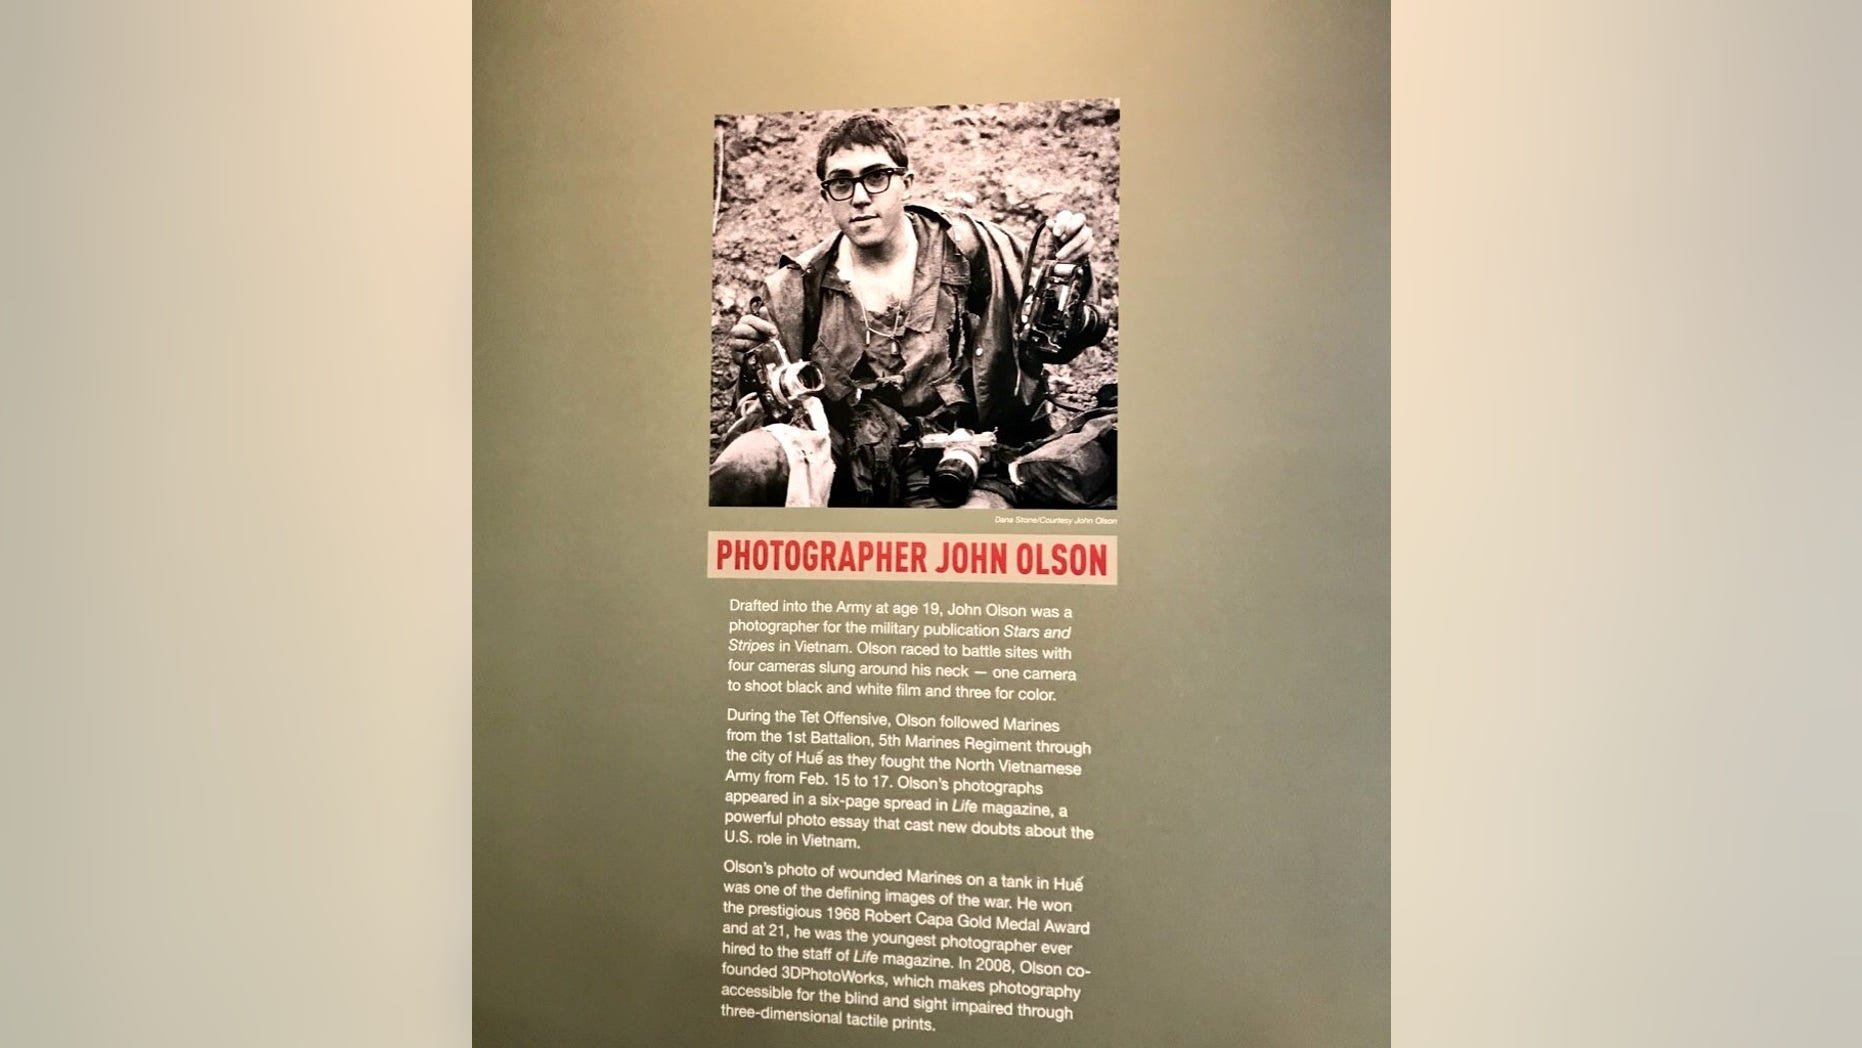 John Olson, a former war photographer, sheds a new light into a defining moment in American history with an exhibit at the Newseum in Washington, D.C.